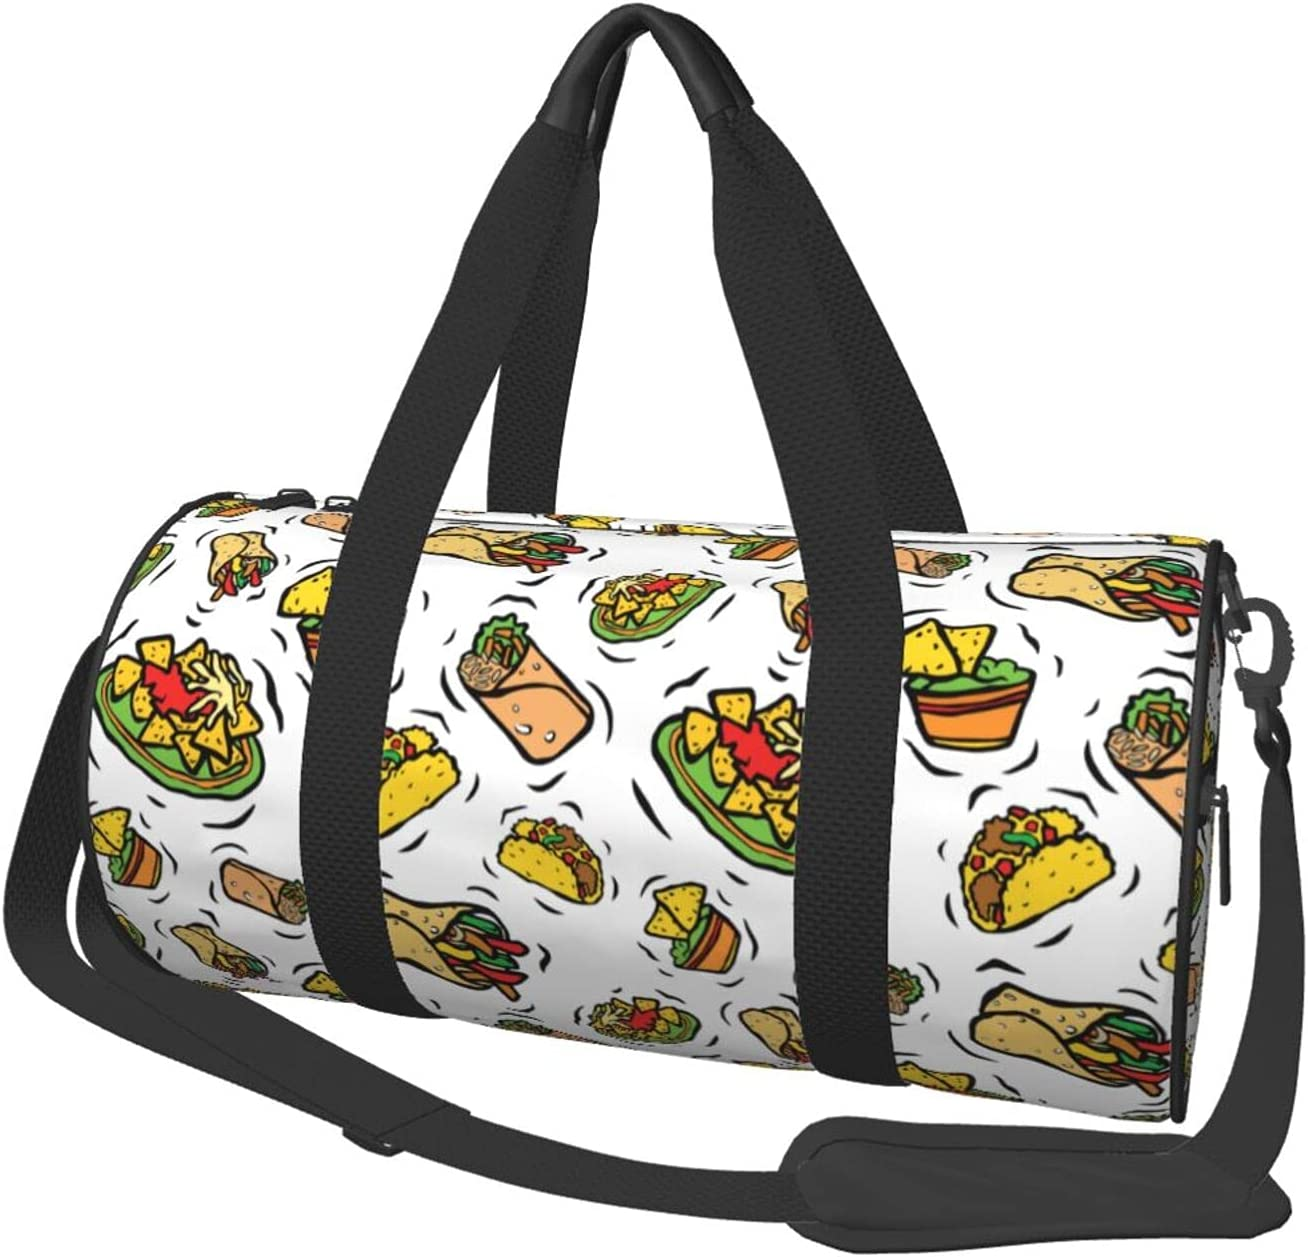 Fredeulva Cute Mexican Food Duffel Round Canvas Selling and selling Gym Shoulder Selling and selling Bag